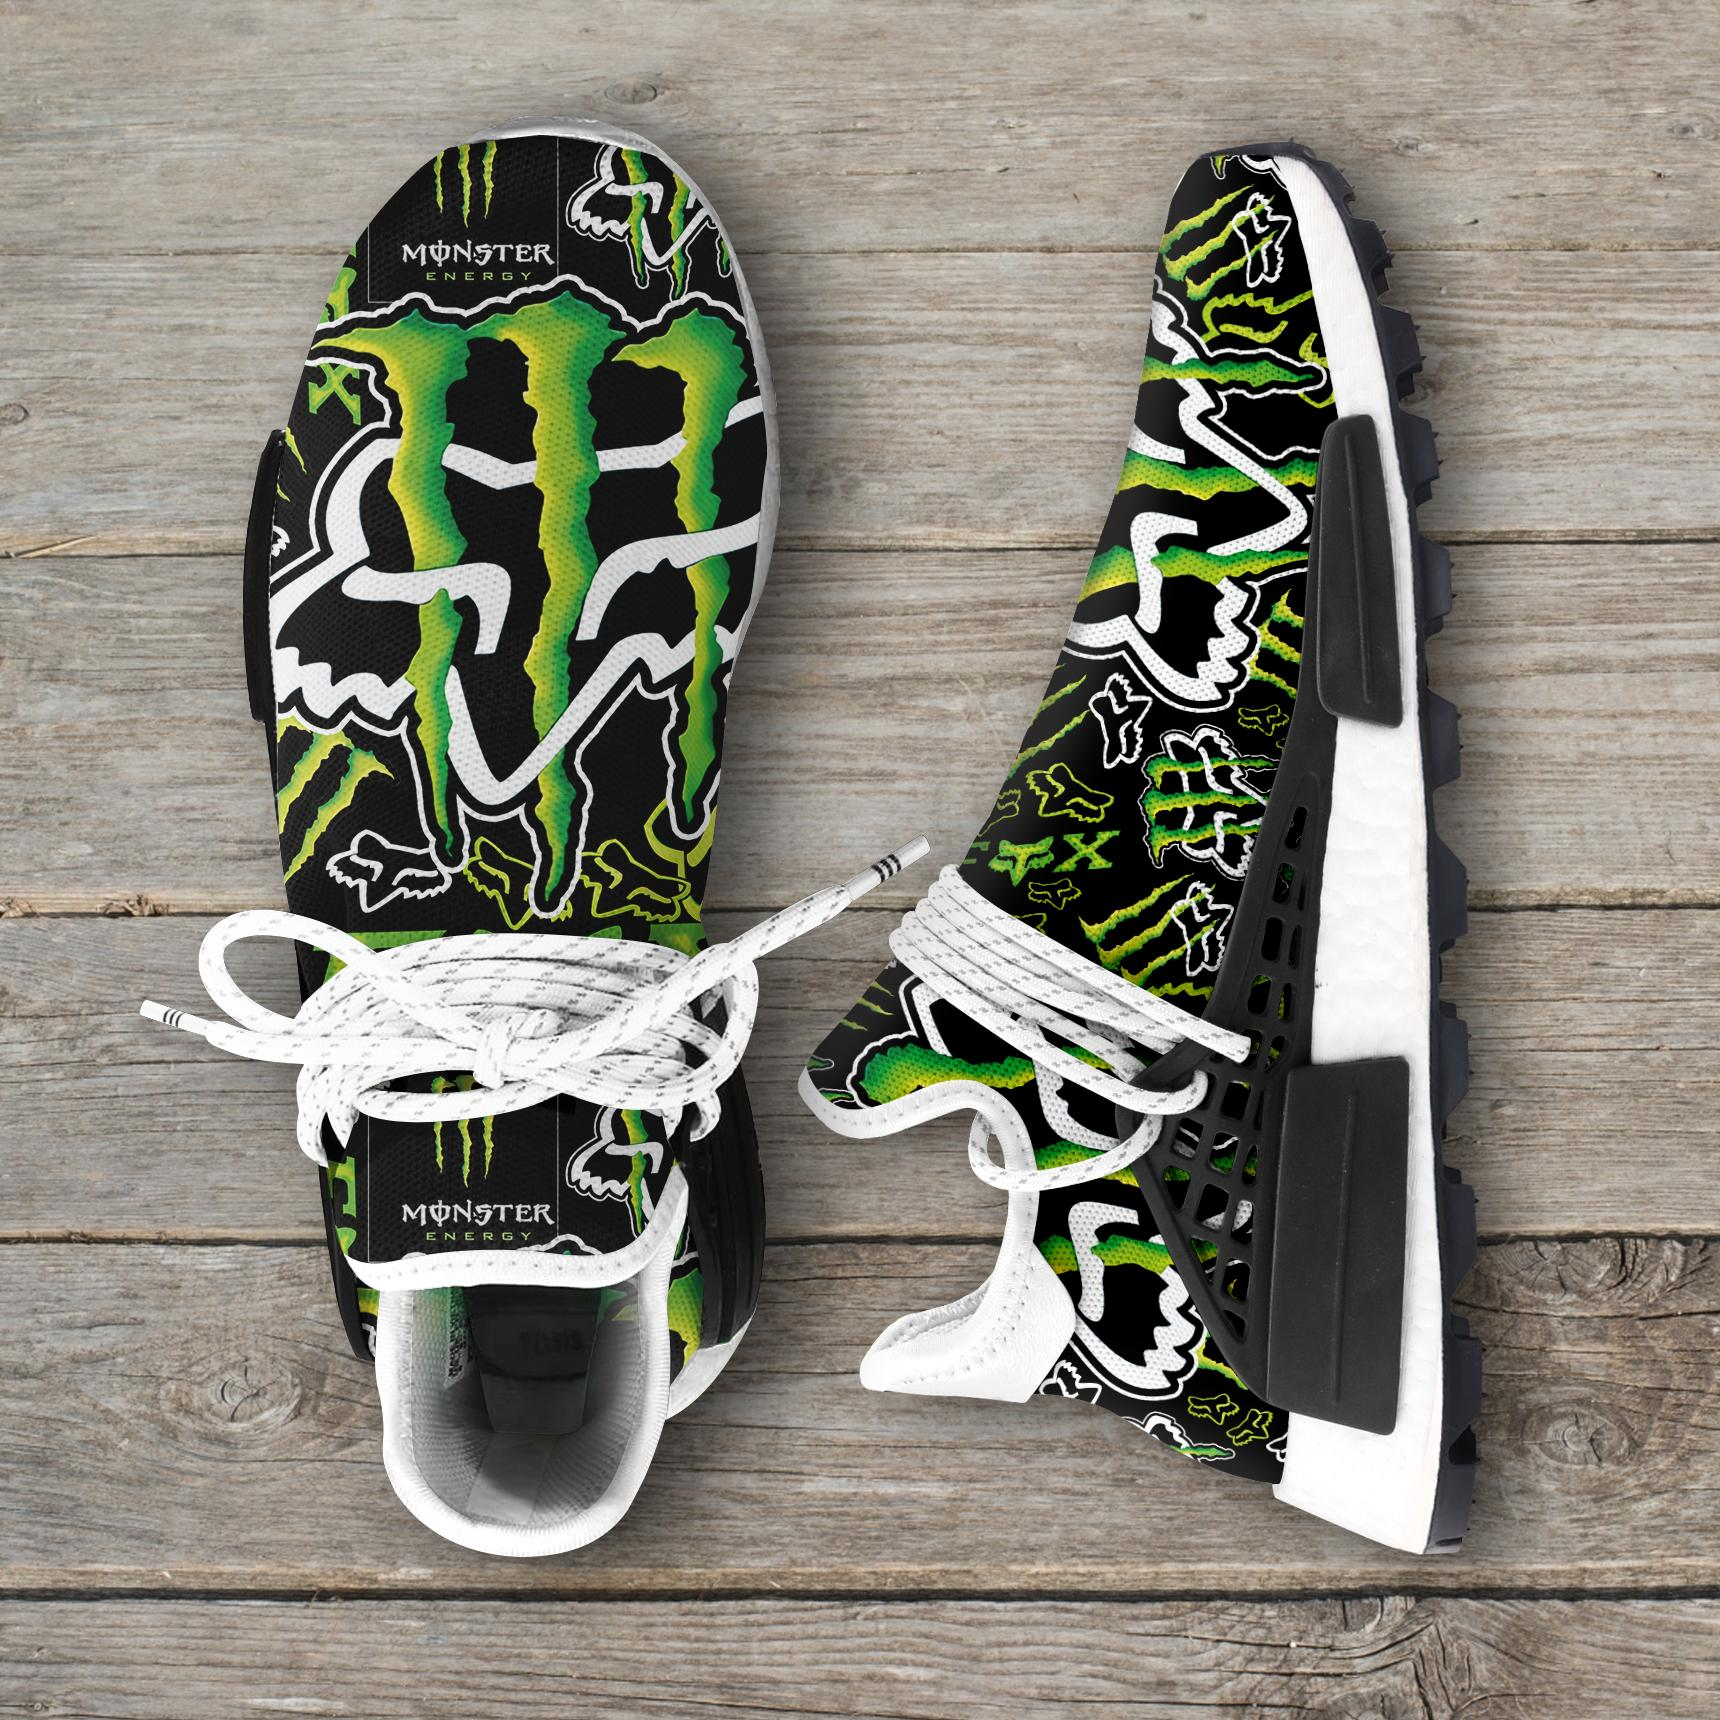 Monster Energy - Fox Racing Nmd Sneakers